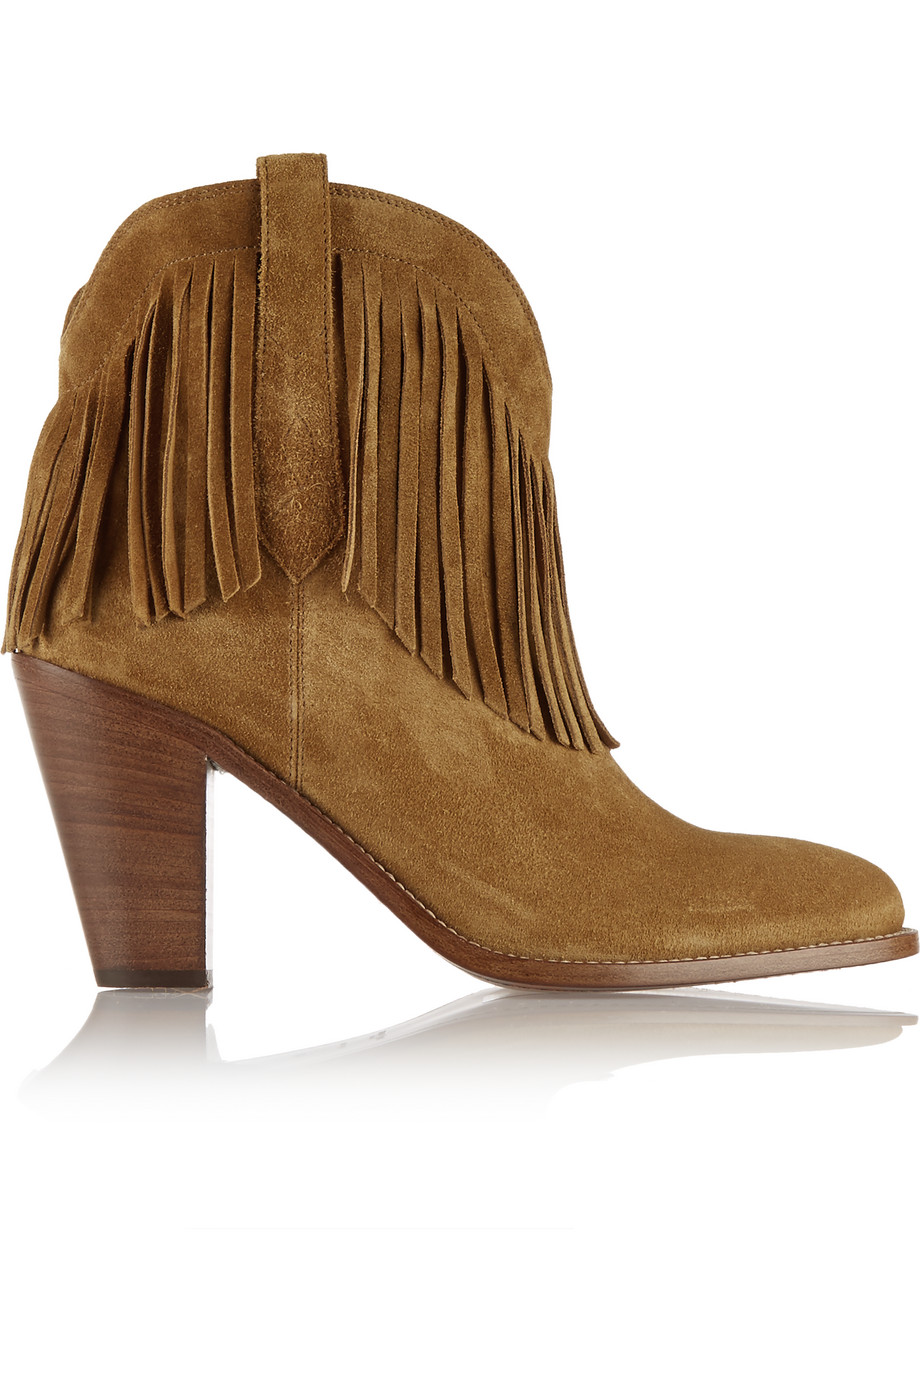 Saint Laurent New Western Fringed Suede Ankle Boots, Tan, Women's US Size: 4.5, Size: 35